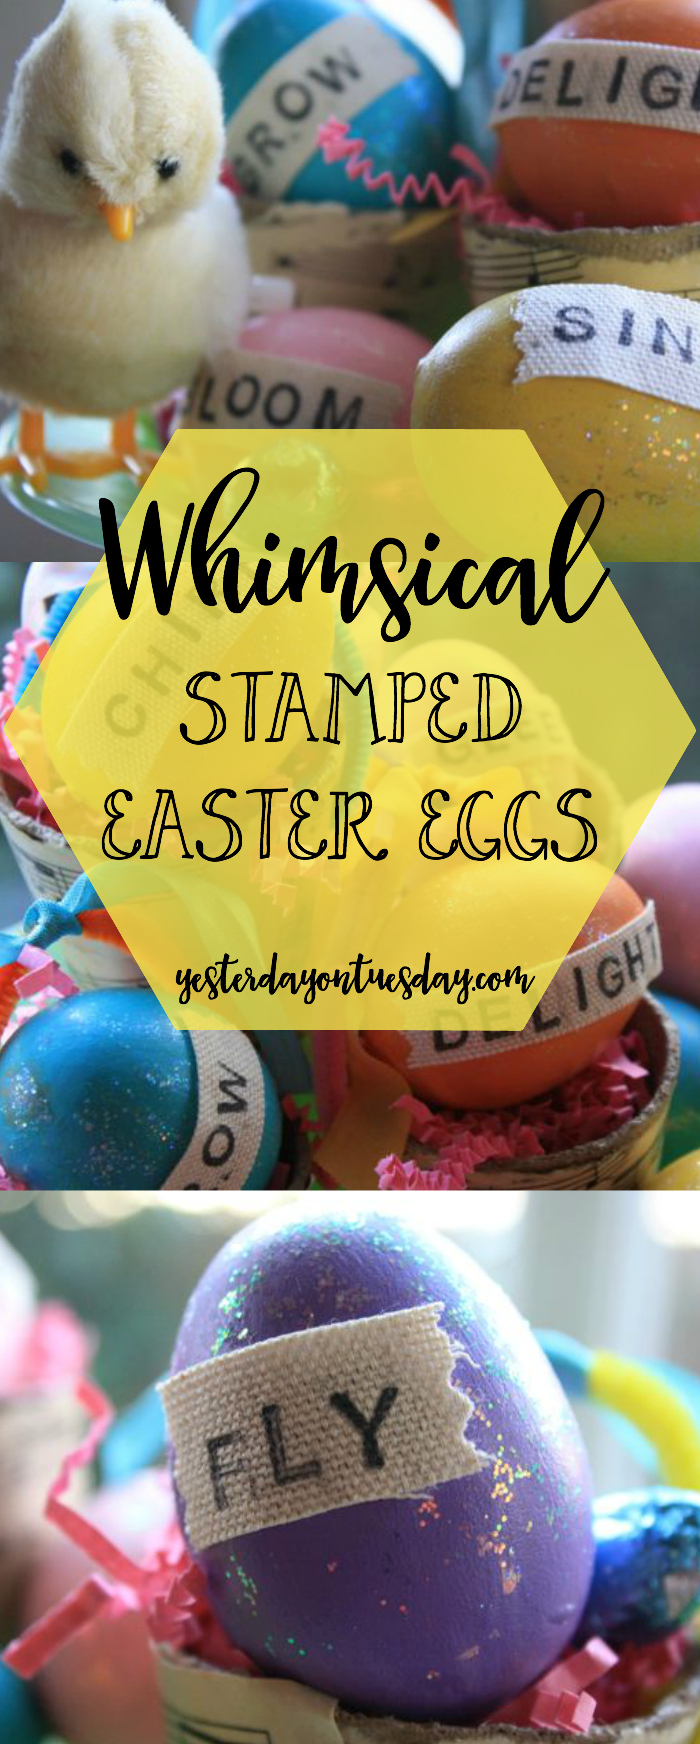 Whimsical Stamped Easter Eggs: How to create colorful and fun faux eggs for Easter decor.